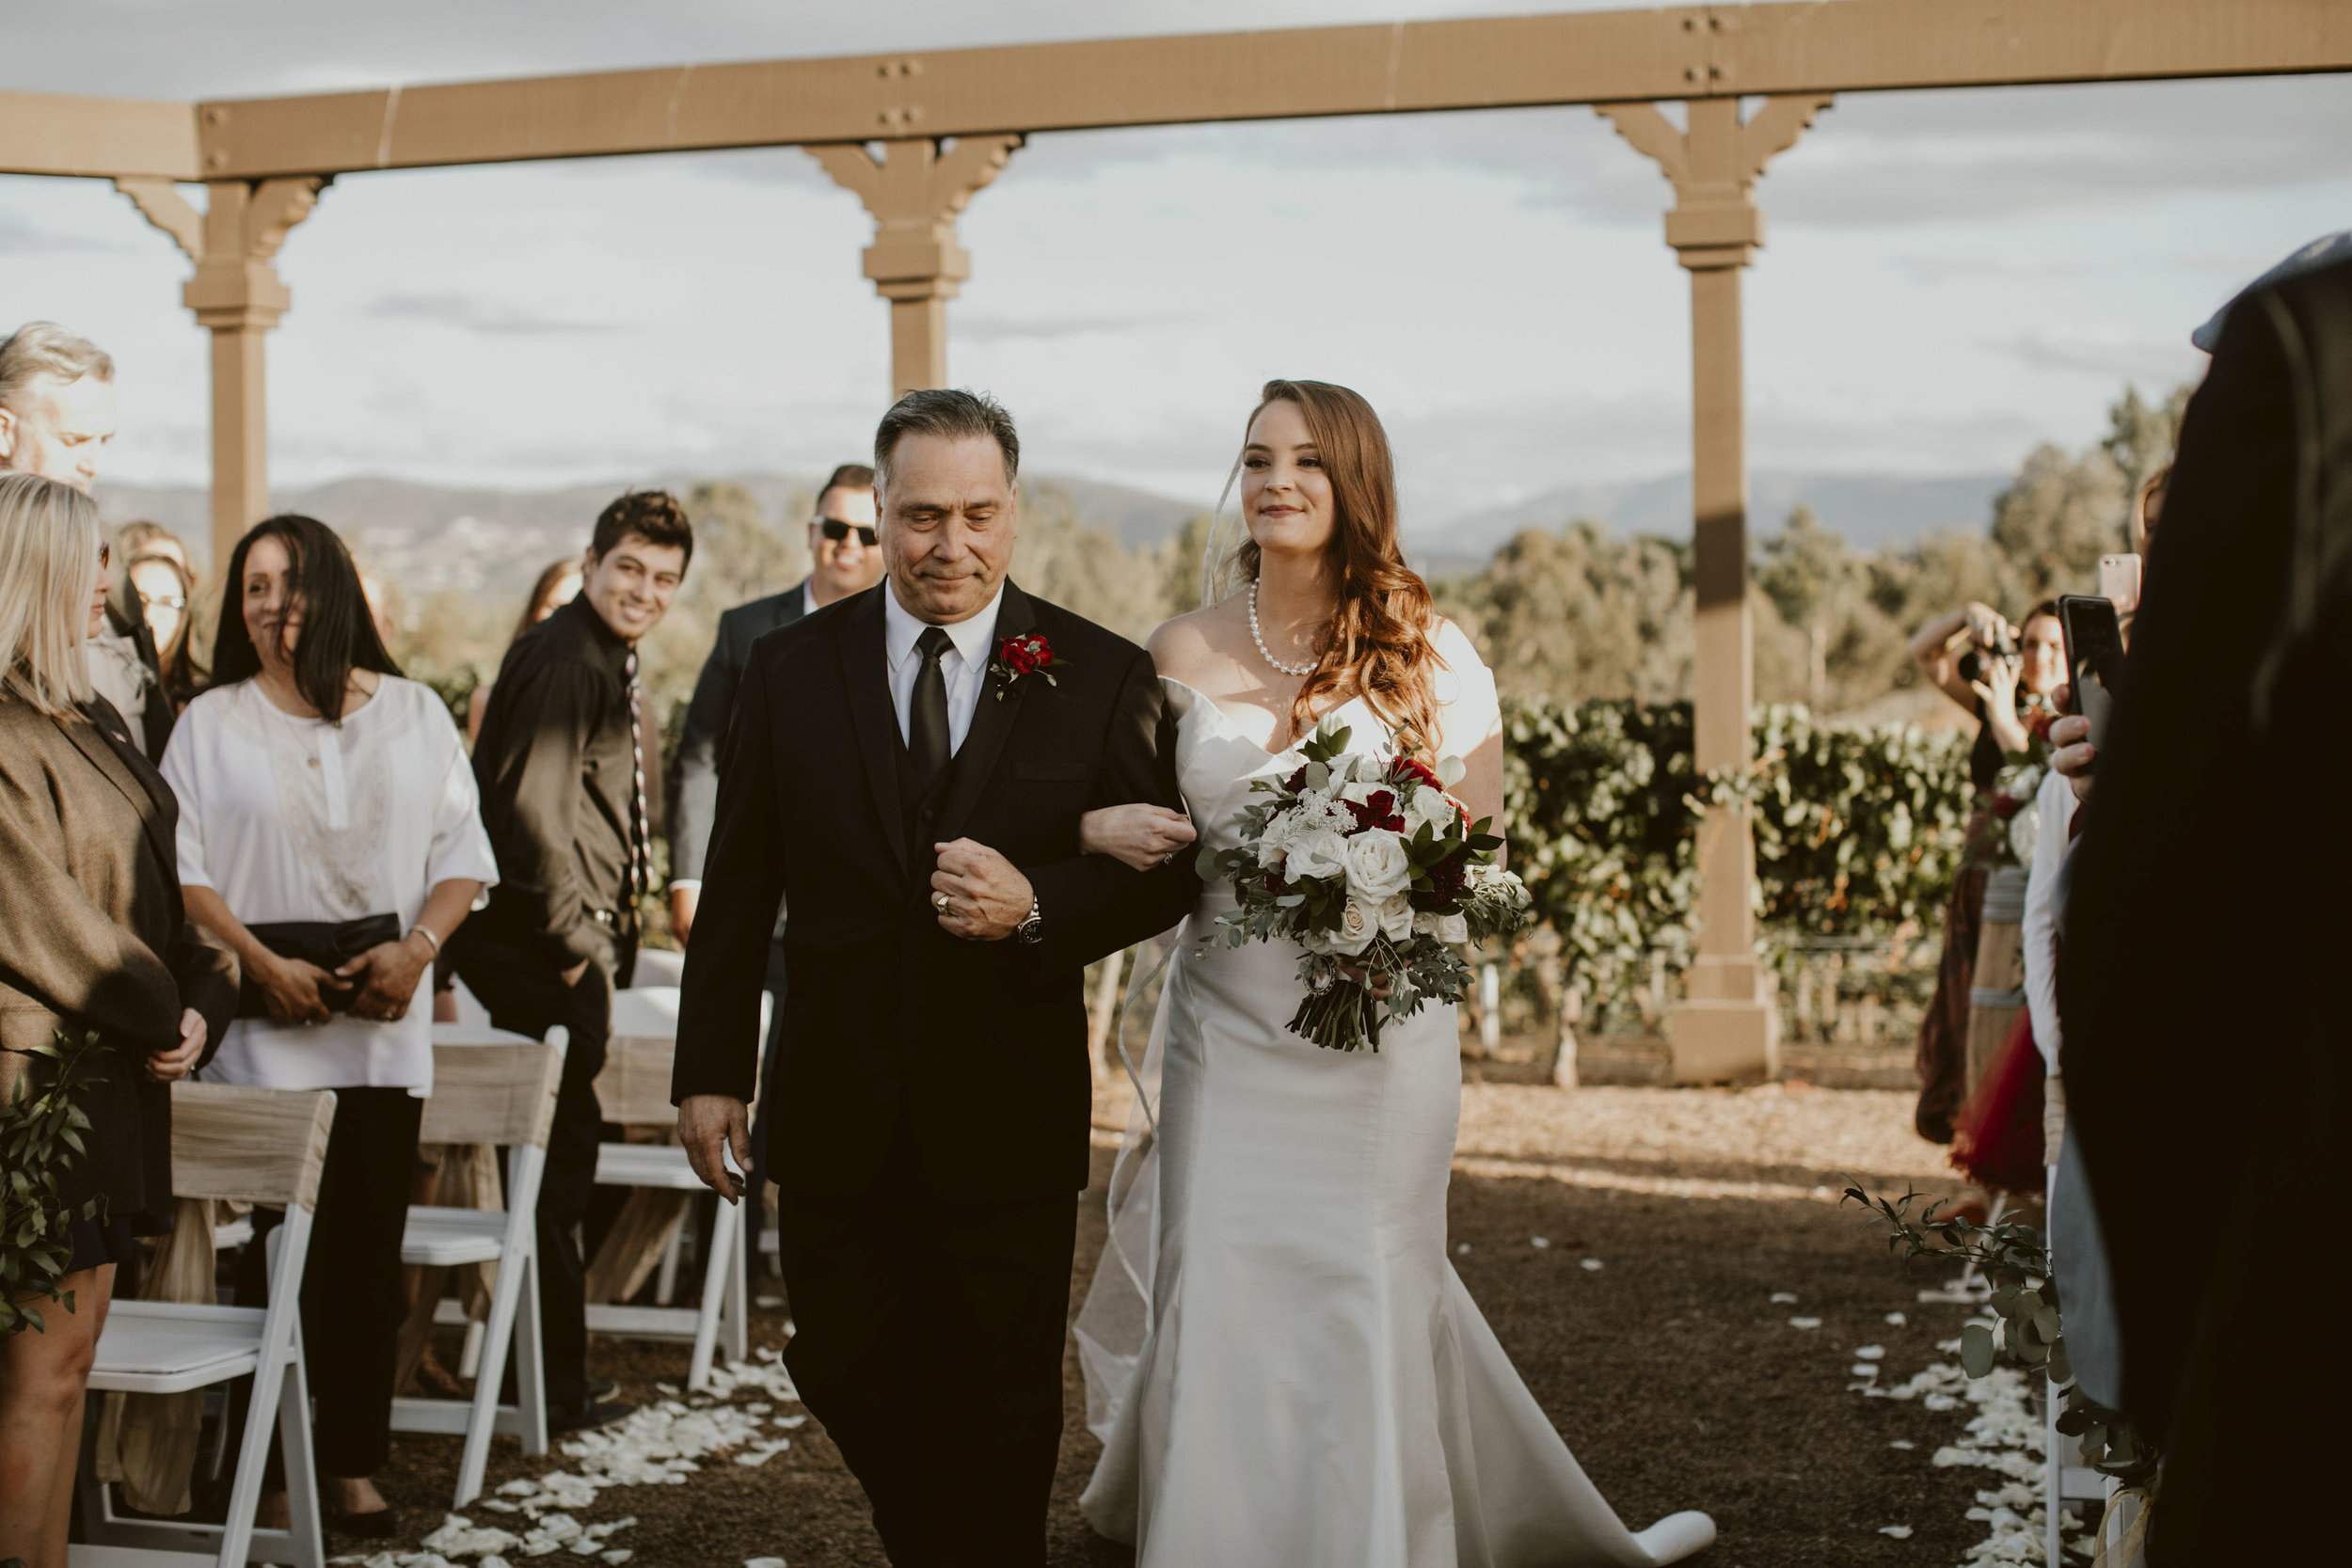 Domenica Beauty _ Hair and Makeup Artist _Wedding _ Temecula, CA _ Catherine and Darryl _ 18.JPG